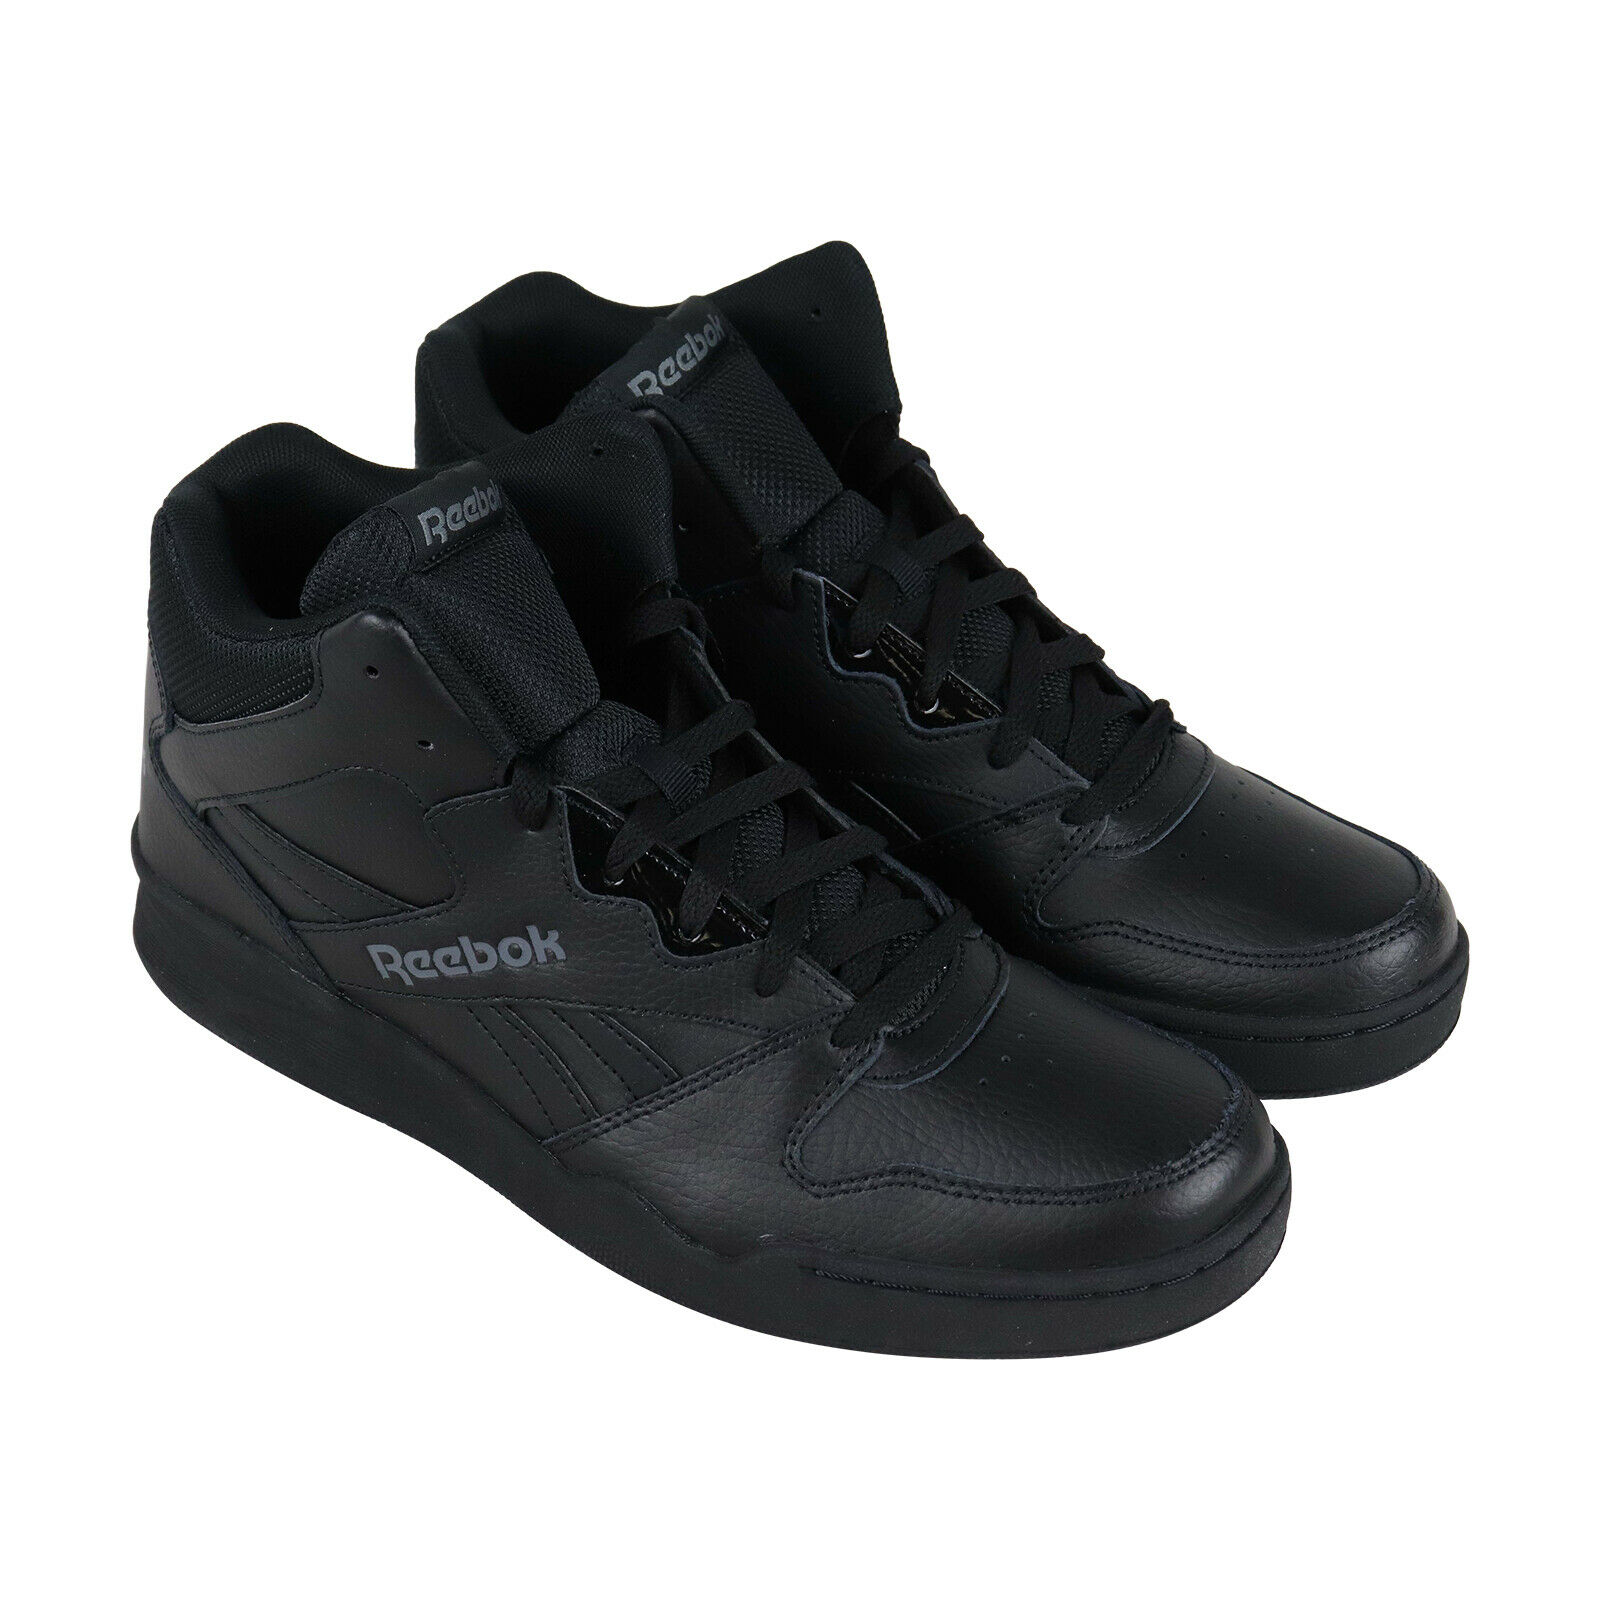 Reebok Royal Bb4500 Hi2 CN4108 Mens Black Casual High Top Sneakers Shoes